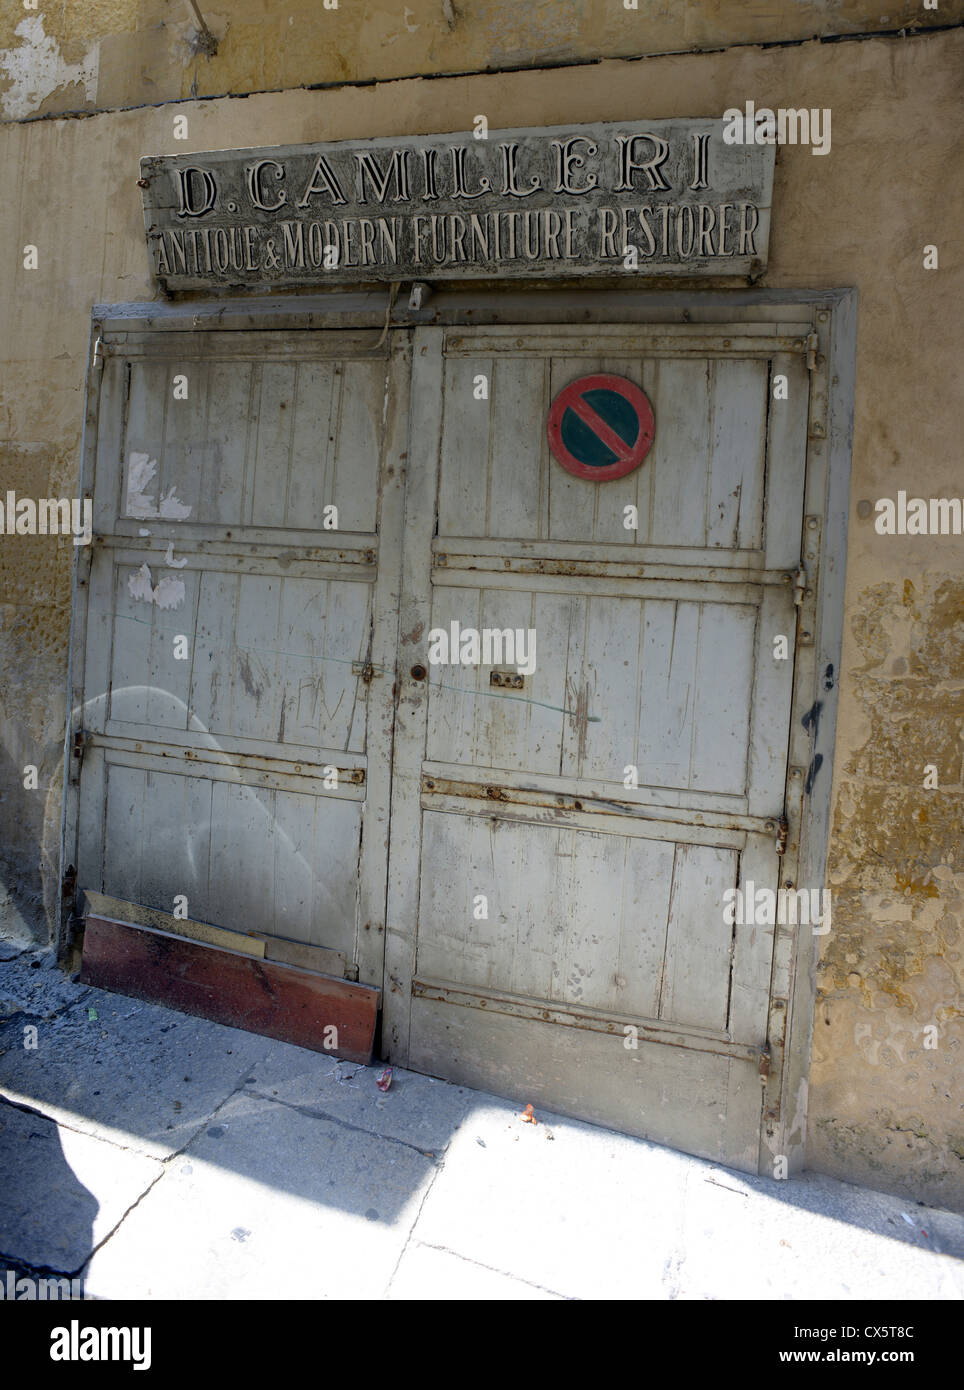 Modern Furniture Workshop old workshop door antique & modern furniture restoration, valletta